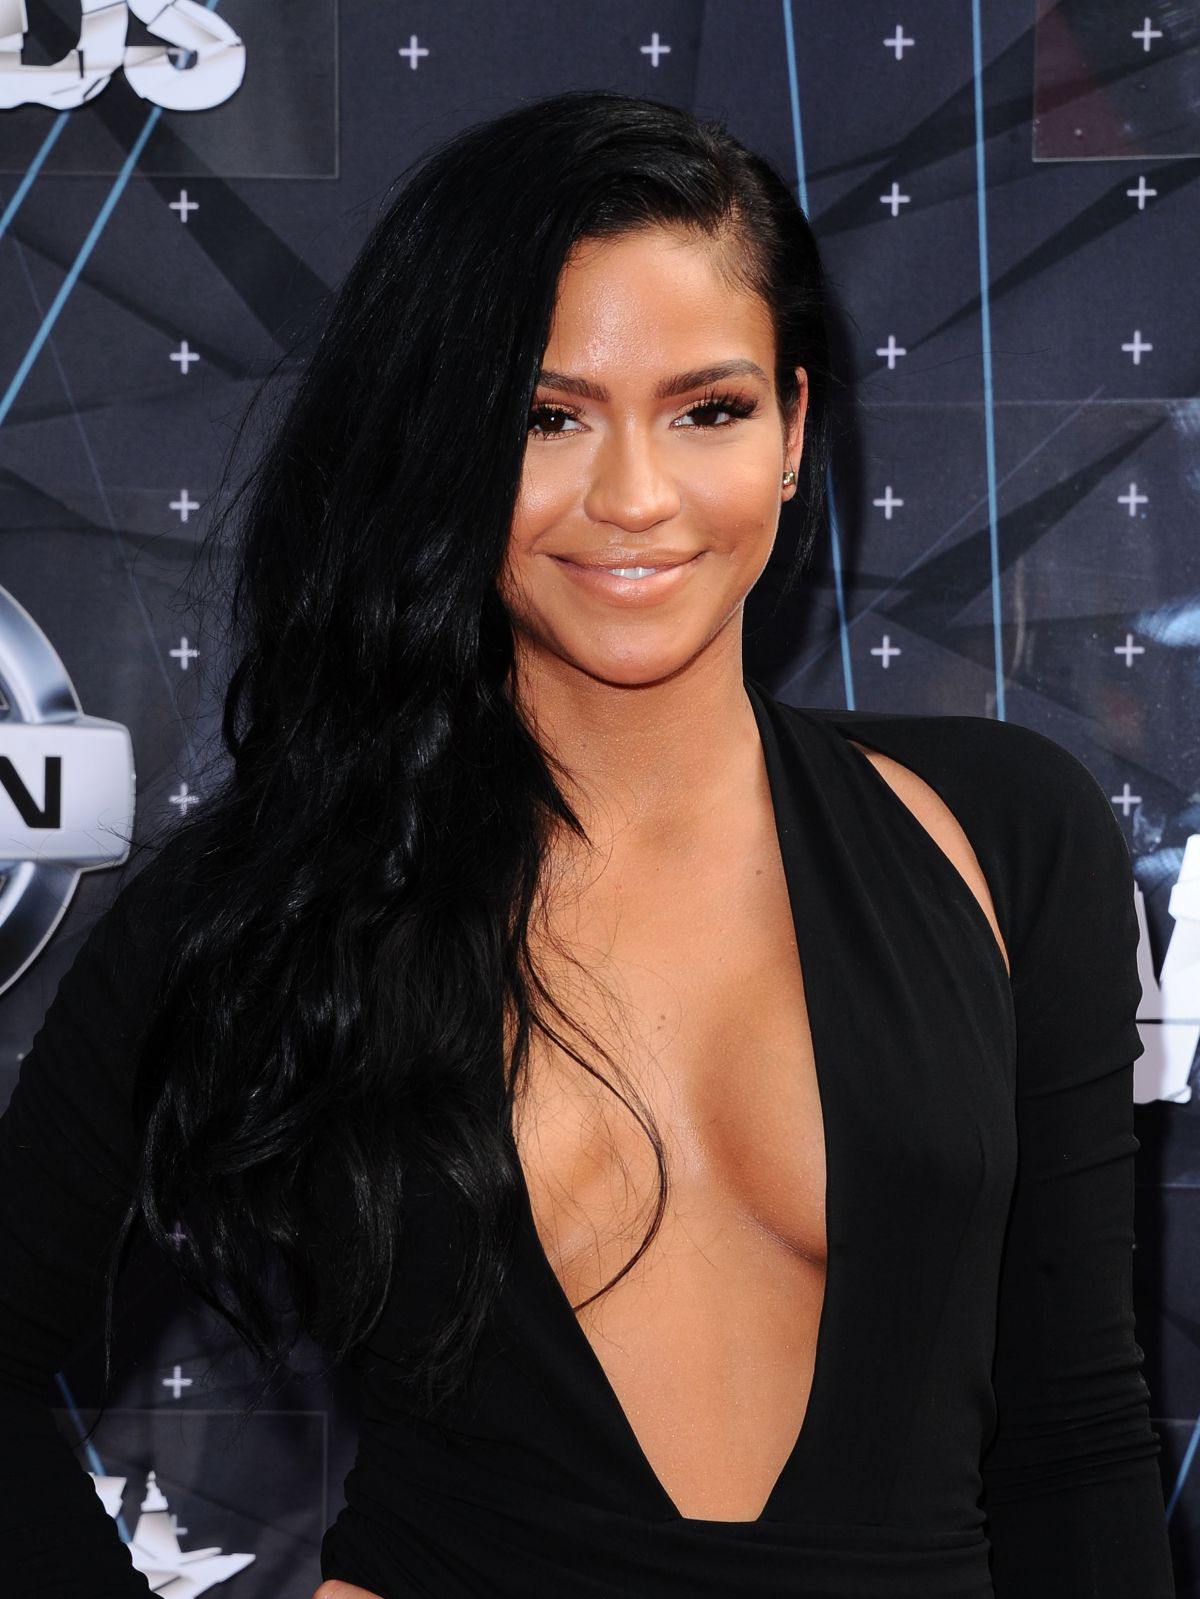 cassie-ventura-at-2015-bet-awards-in-los-angeles_1